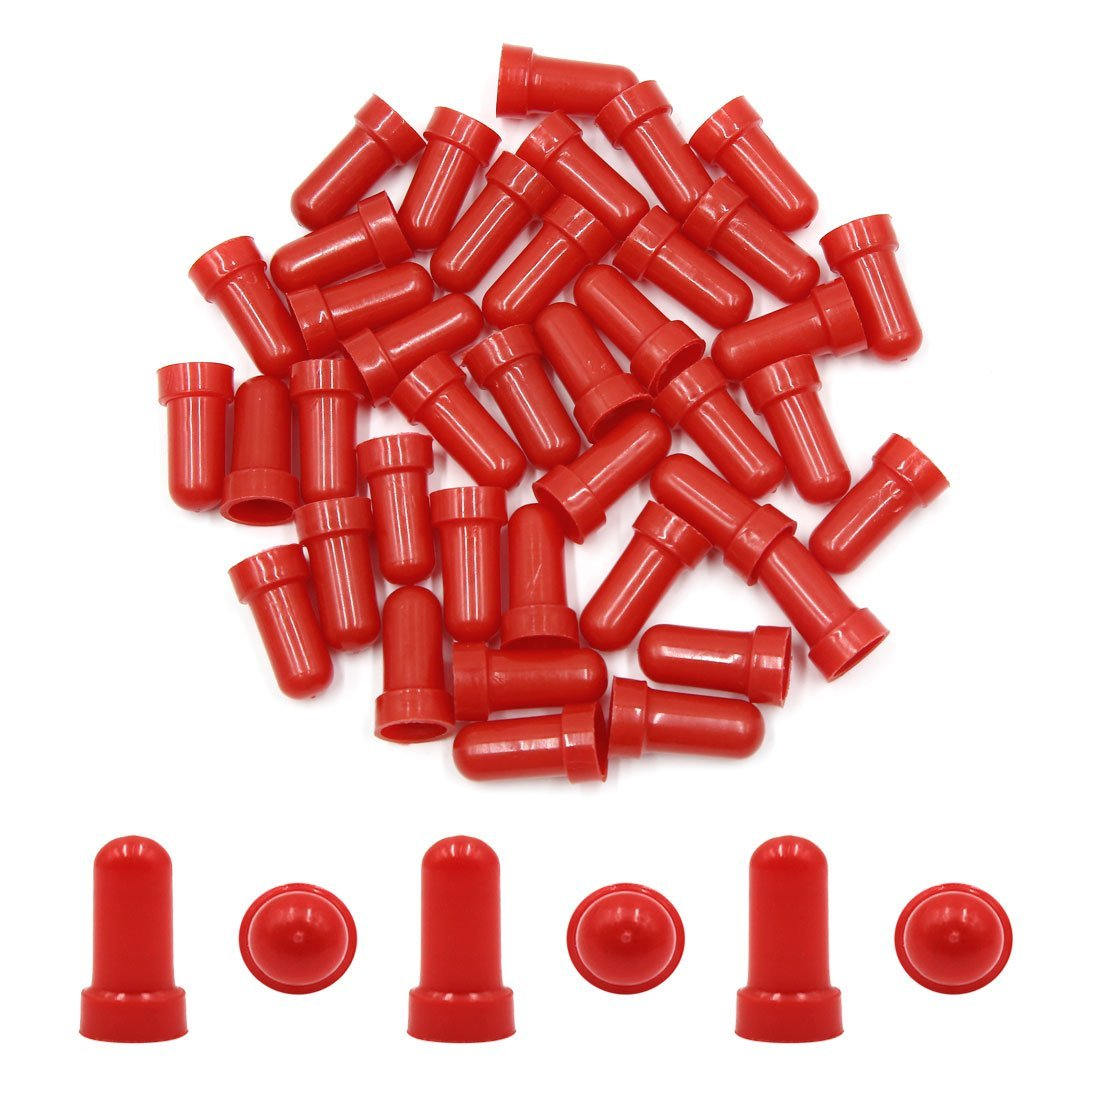 Amazon.com: eDealMax 40Pcs de Los remaches de plástico Rojo de clavos y grapas Clips Negro de Fender Vehículo: Automotive